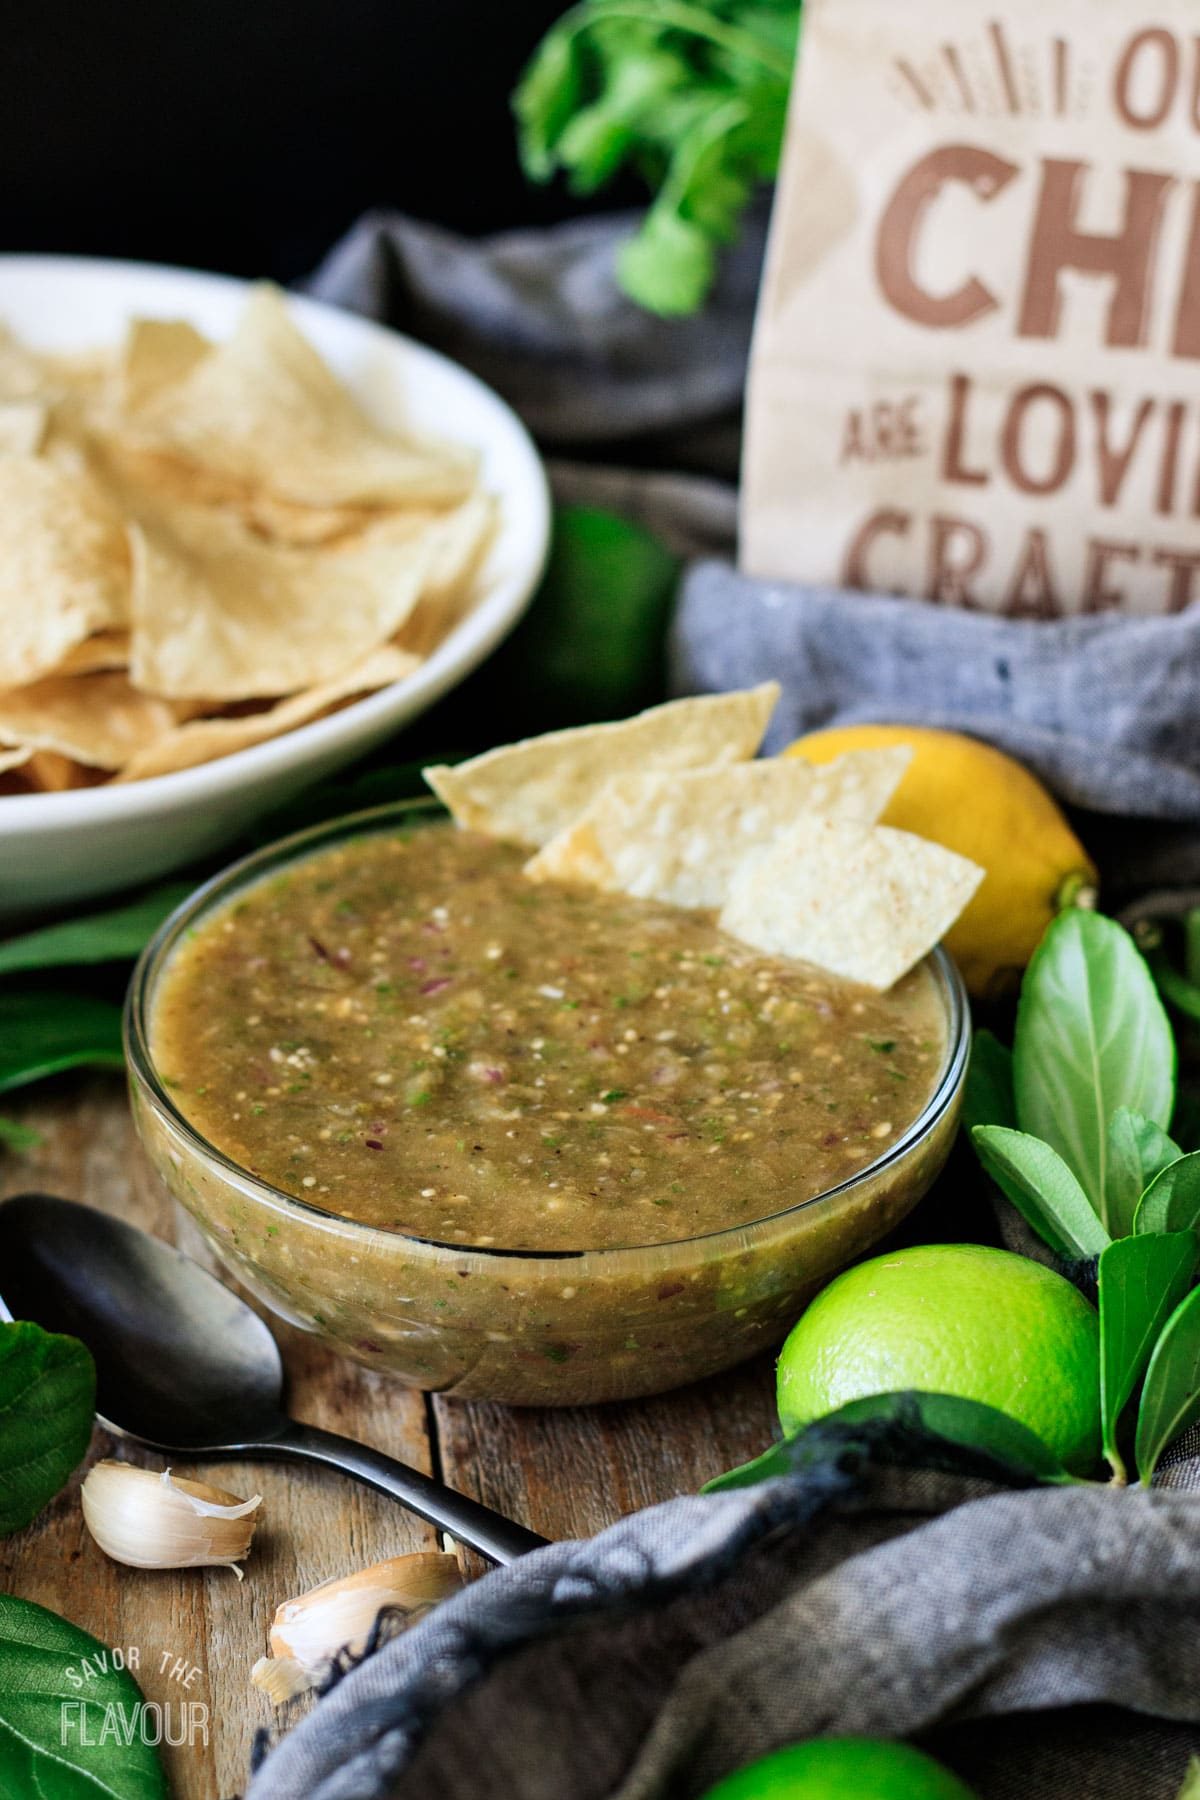 bowl of Chipotle tomatillo green salsa with a spoon and tortilla chips